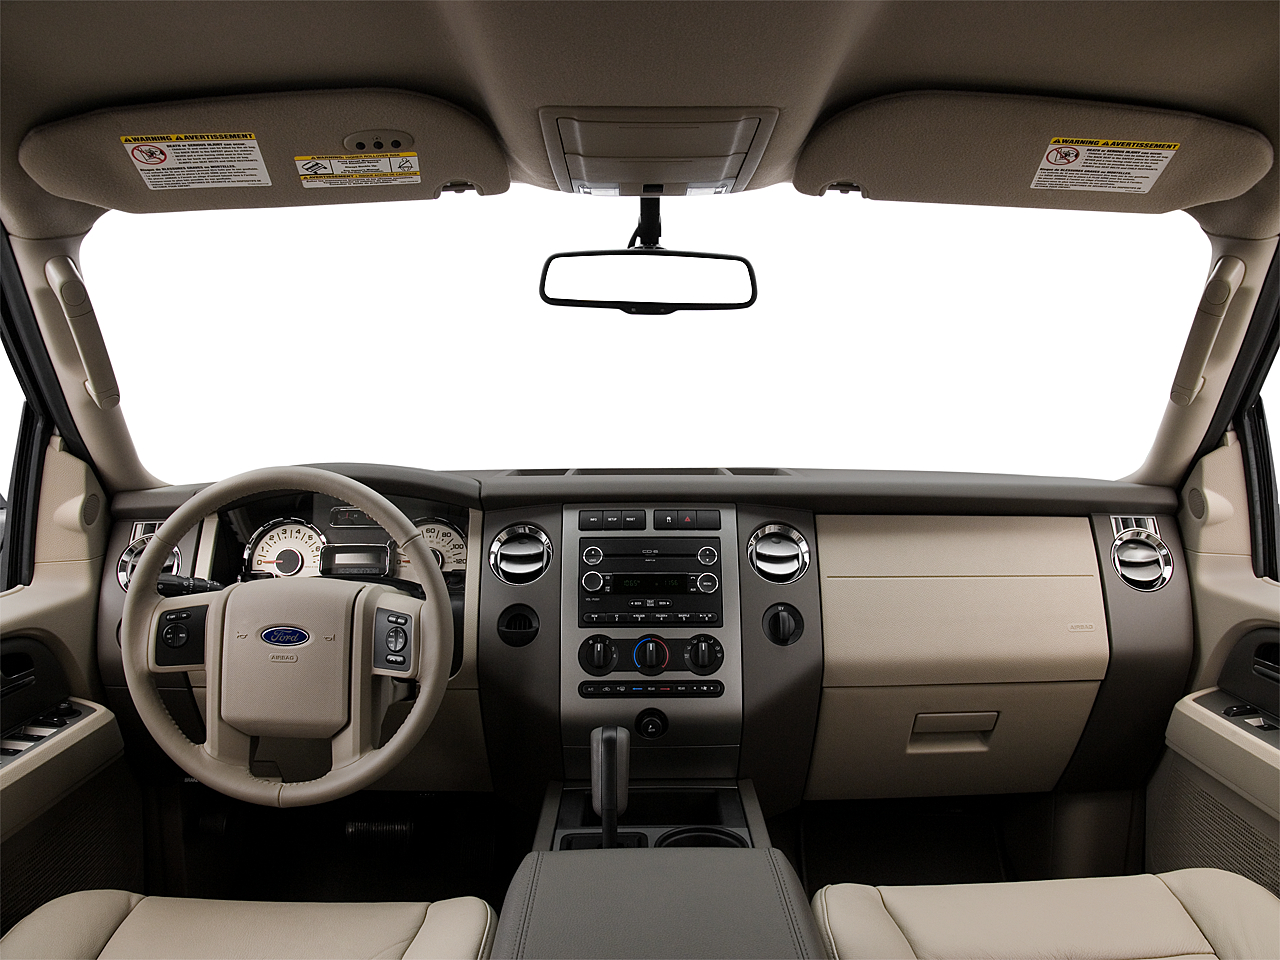 2009 ford expedition xlt centered wide dash shot